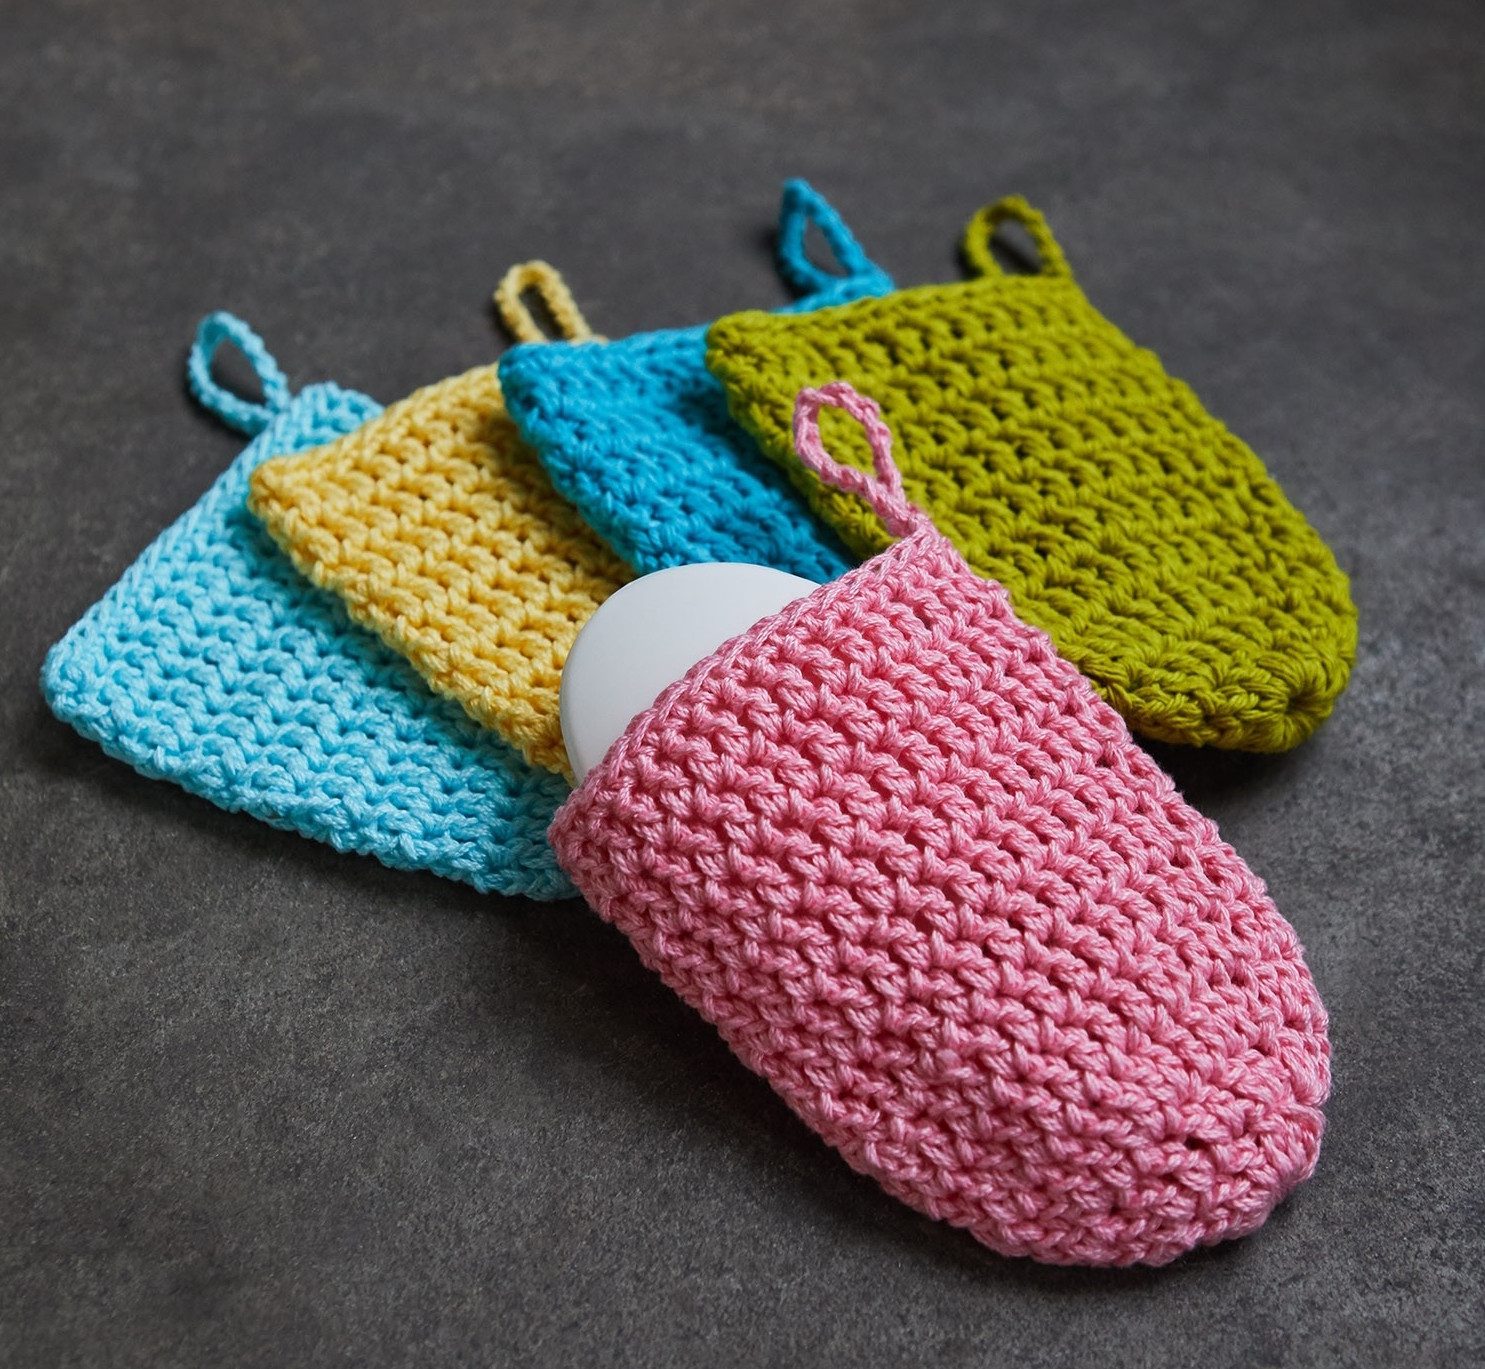 These Crochet Projects Ideas Will Blow Your Mind Charity Project Make A Soap Sack Lion Brand Notebook